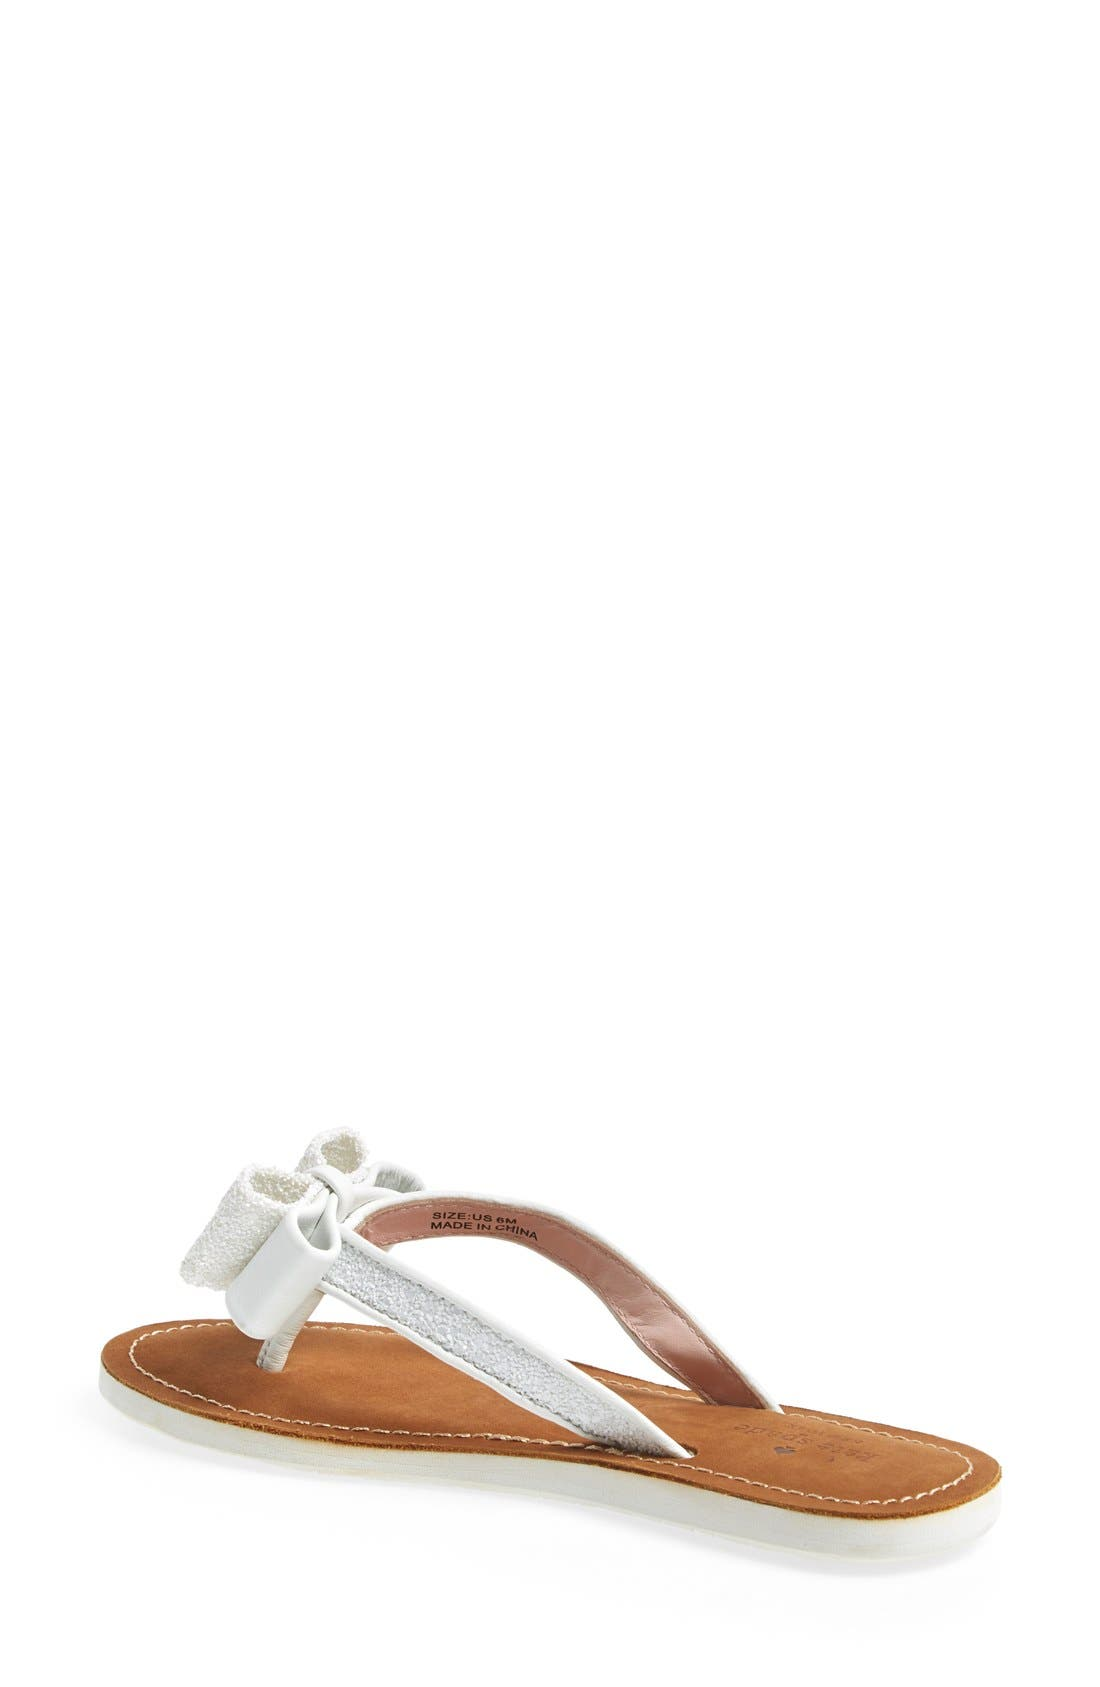 Alternate Image 2  - kate spade new york 'icarda' glitter flip flop (Women)